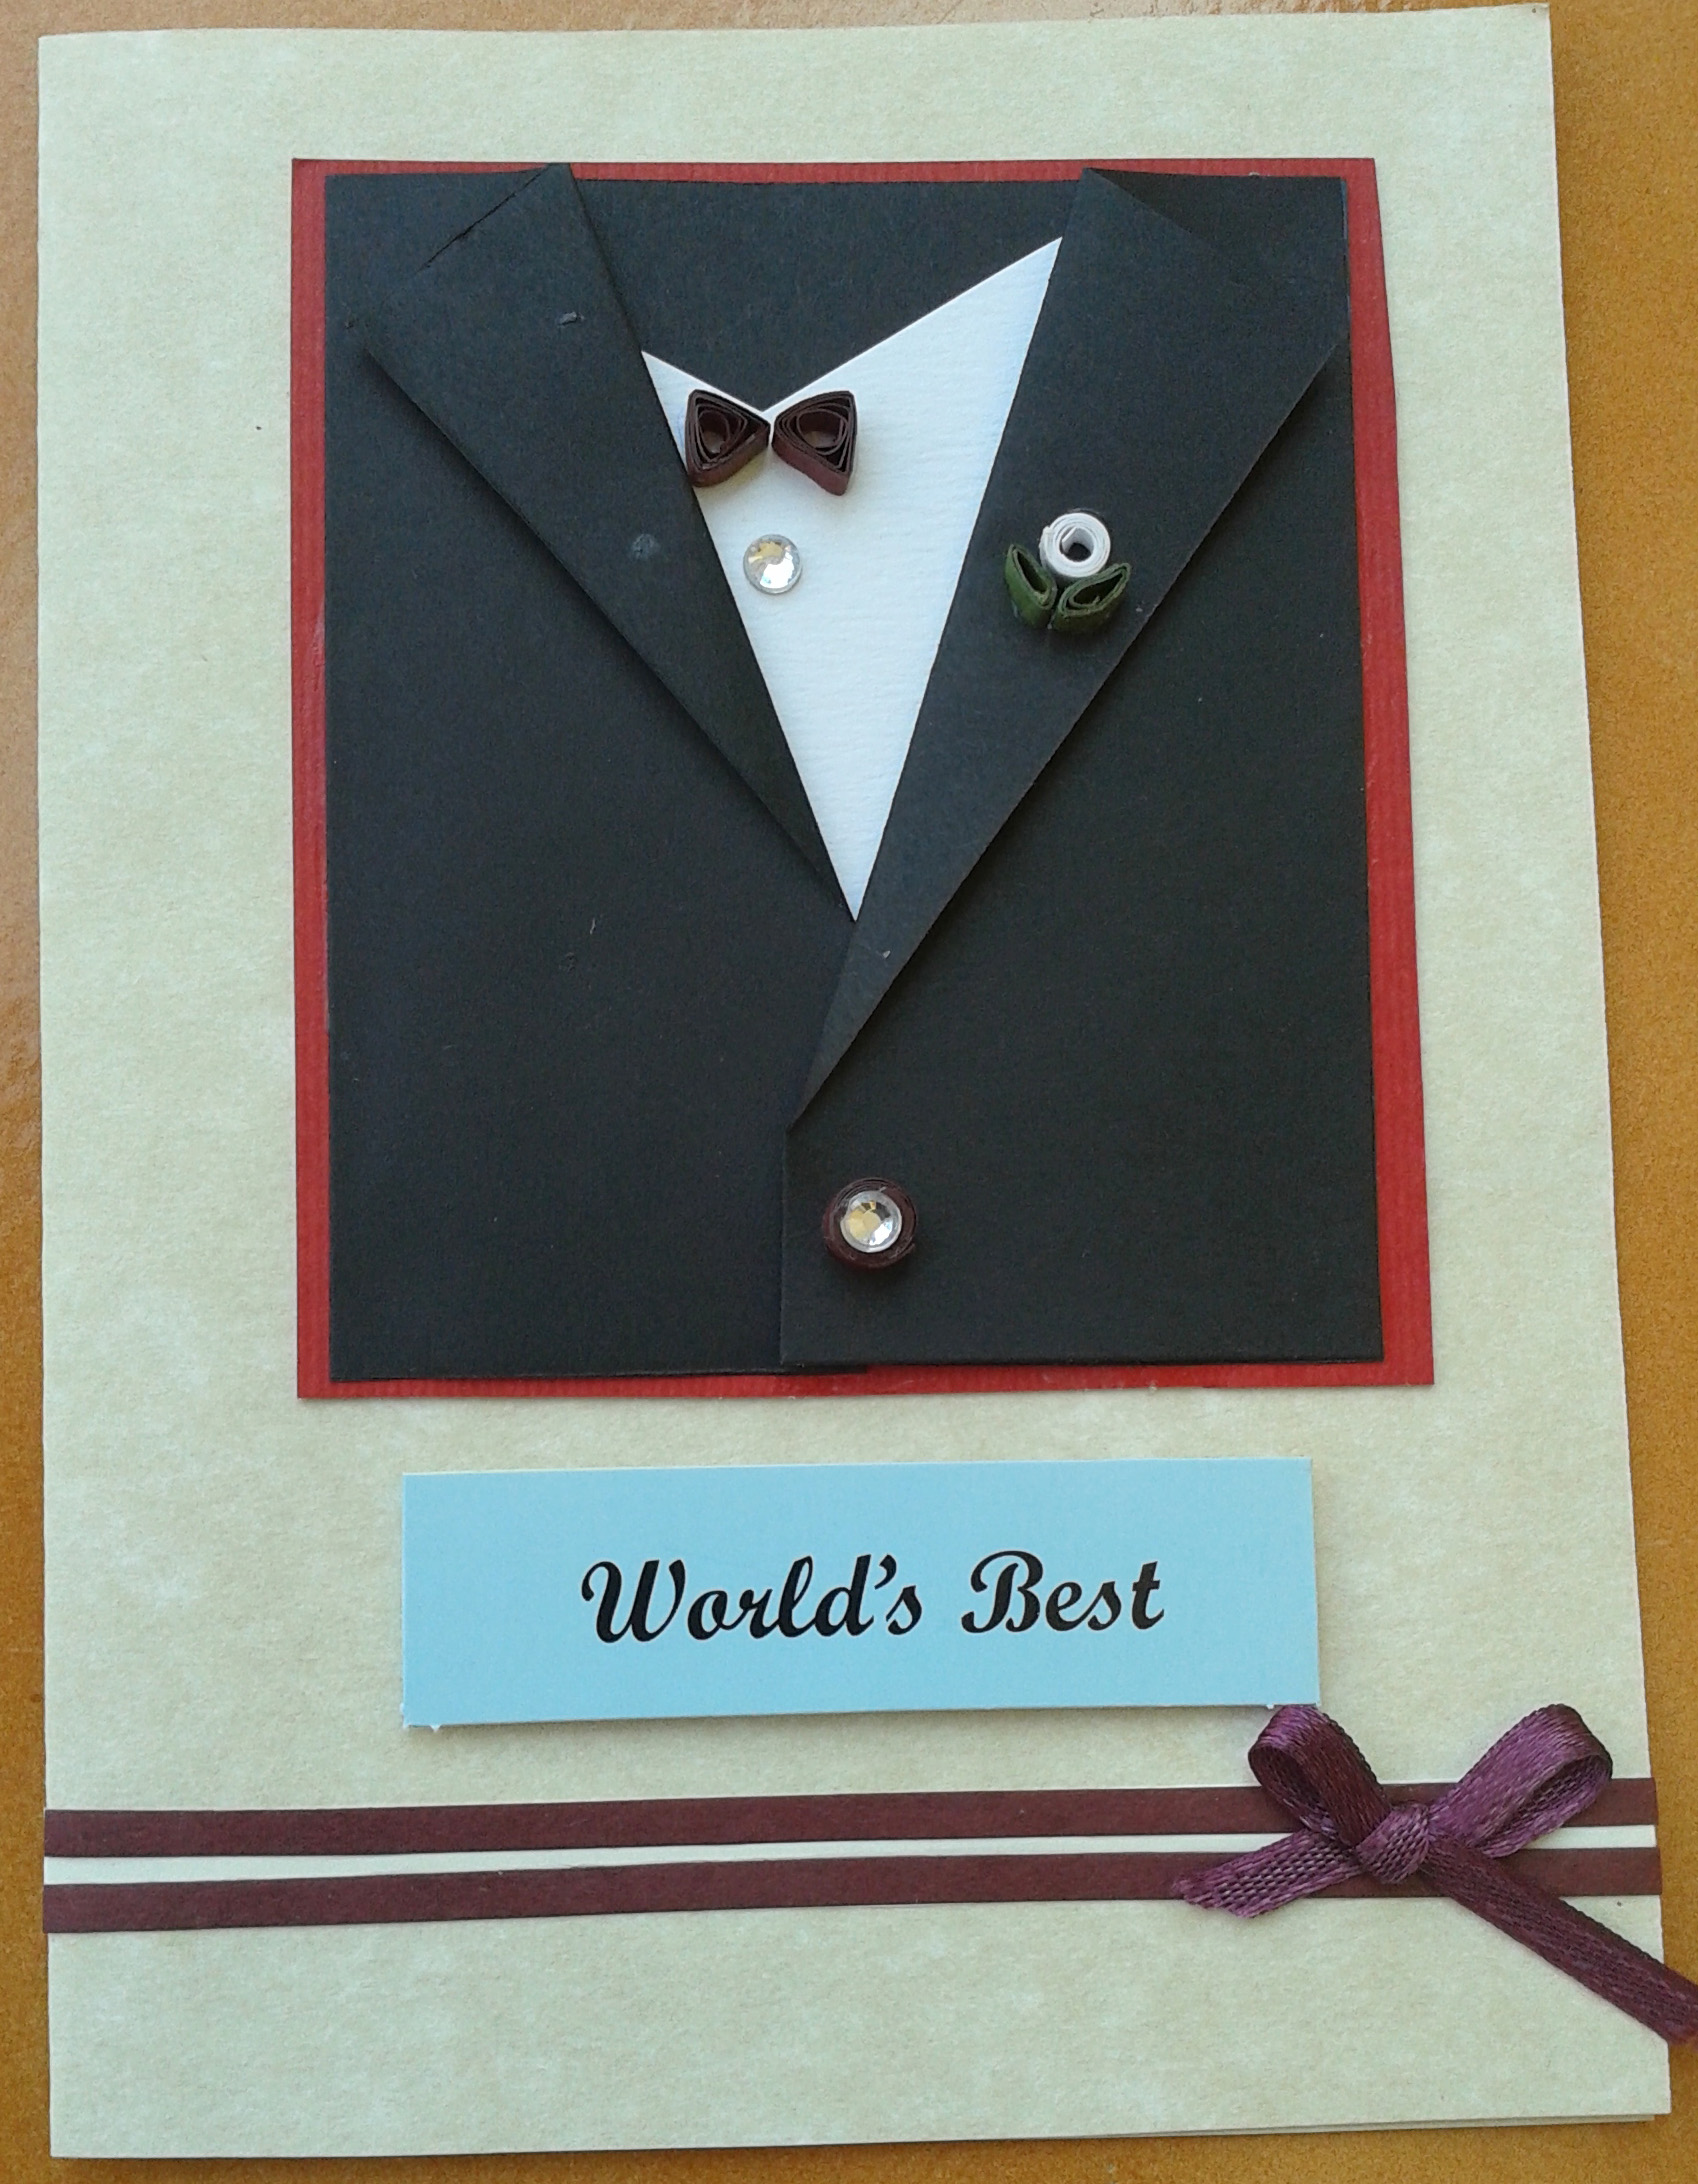 Buy World S Best Black Suit Card For Him Shipmycard Com